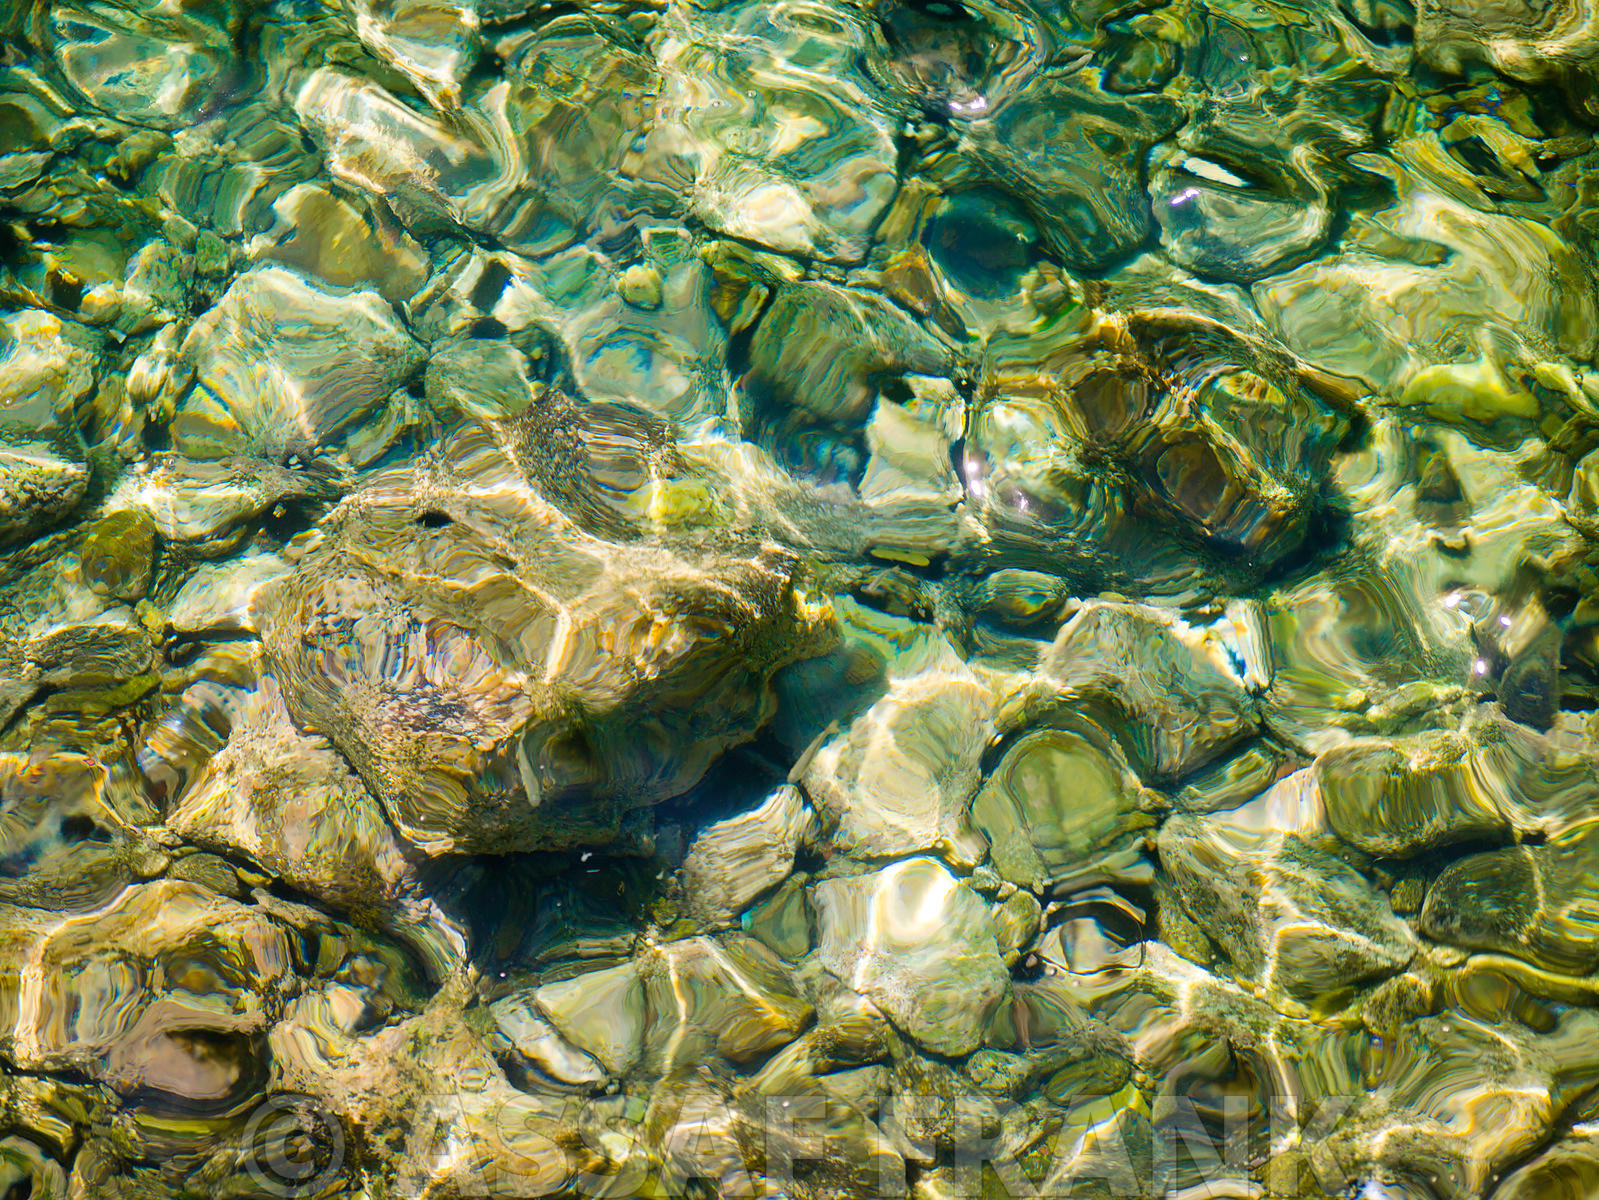 Mykonos, Small rocks in sea, close-up